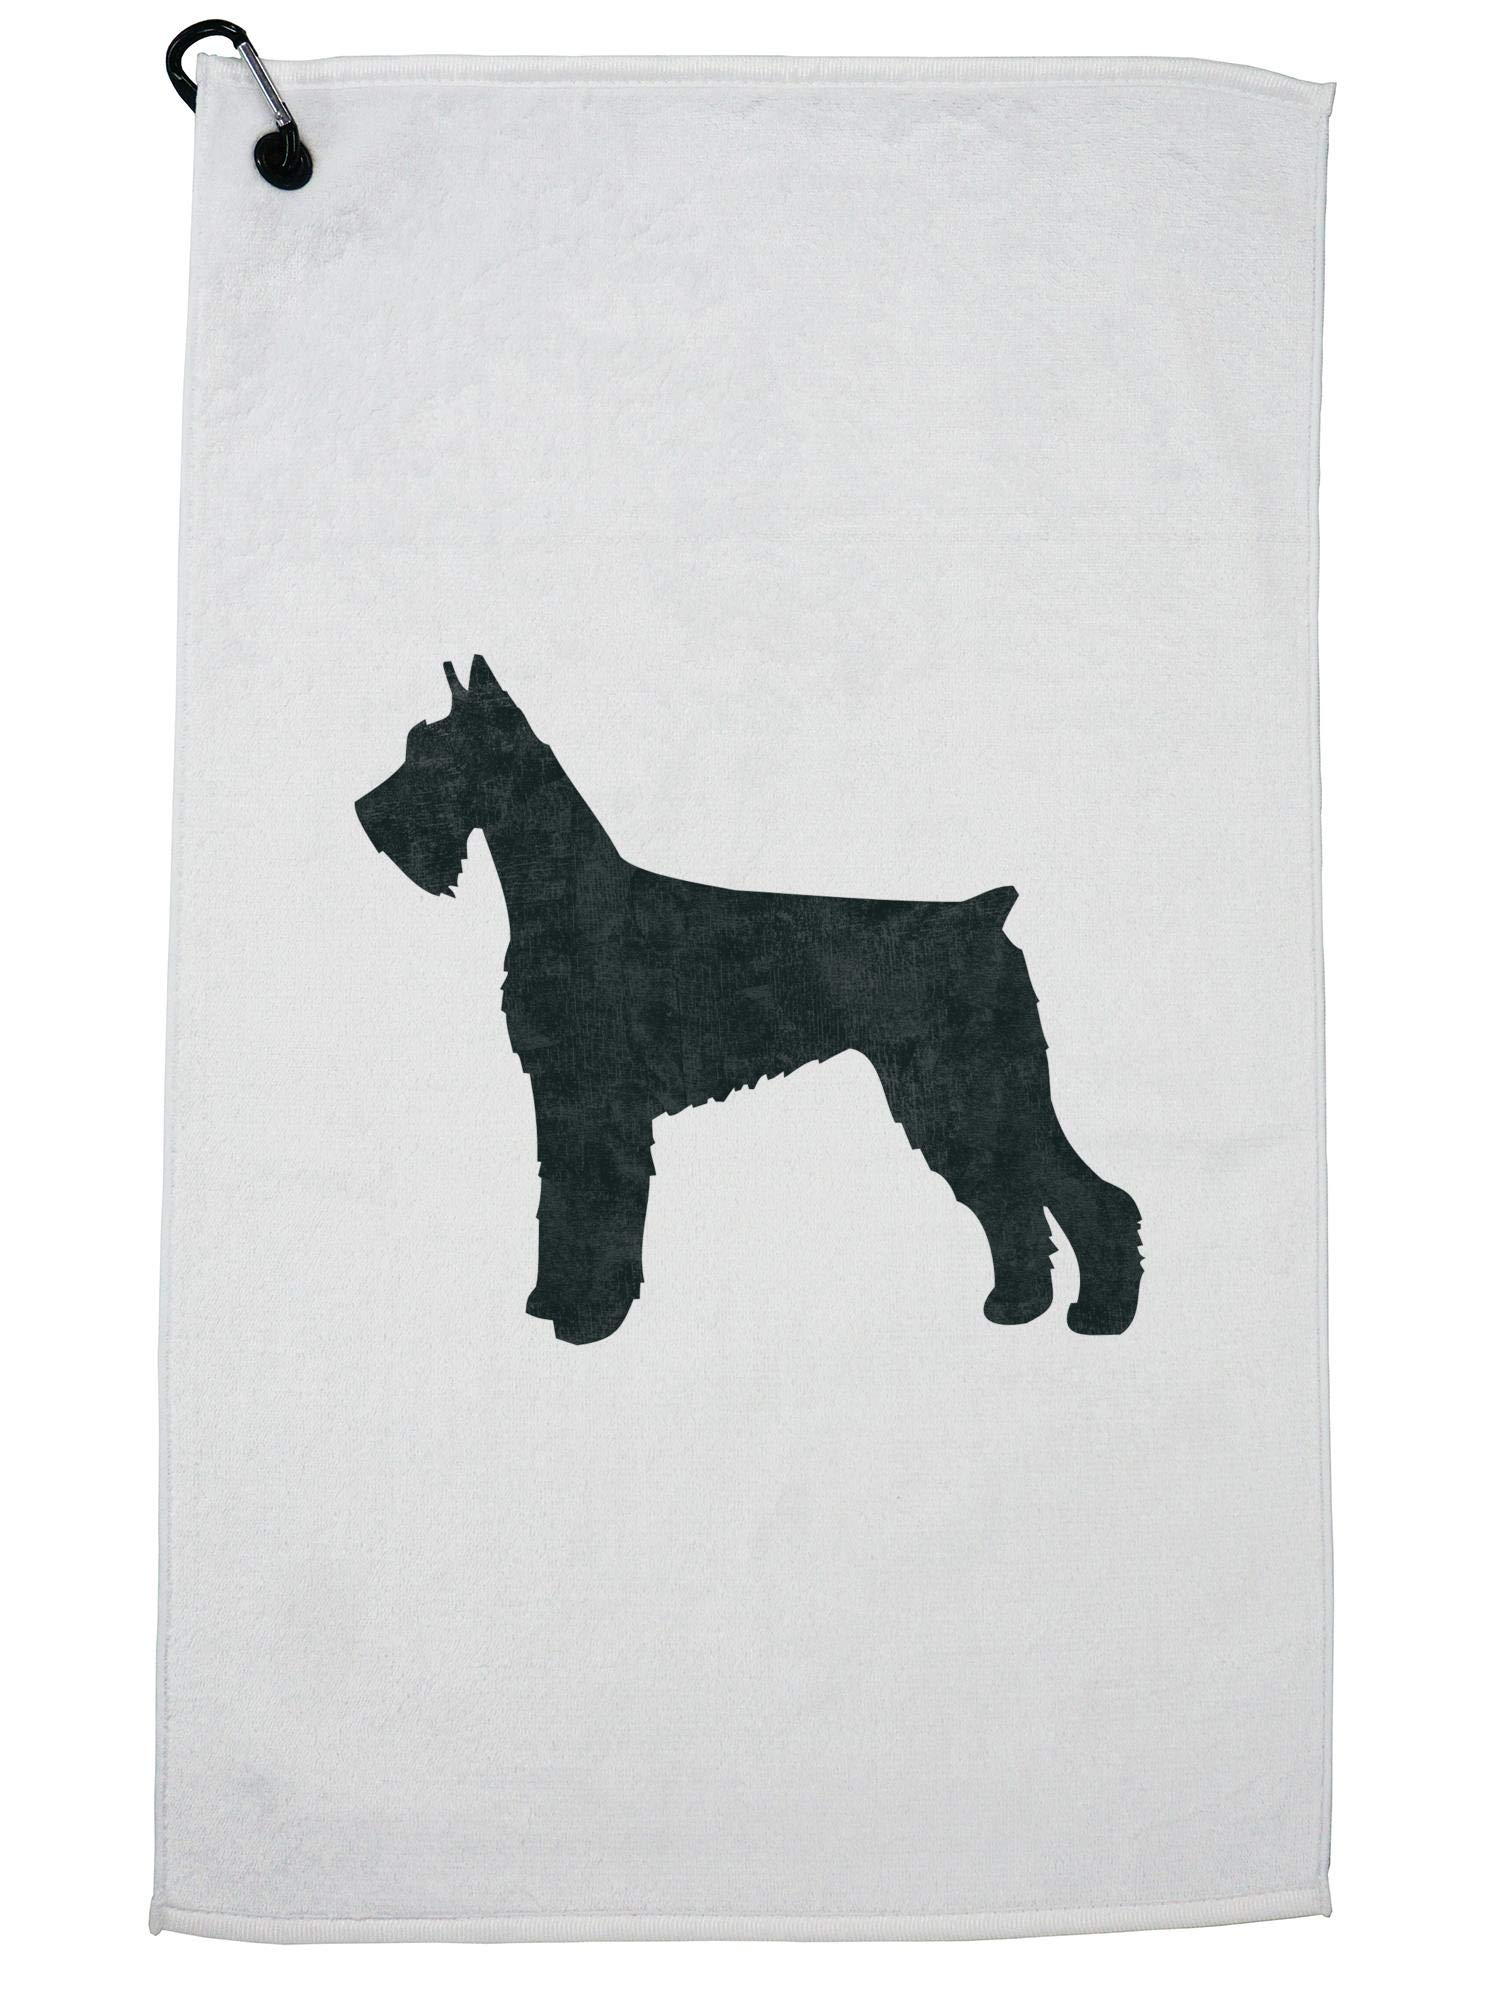 Hollywood Thread Giant Schnauzer Dog Golf Towel with Carabiner Clip